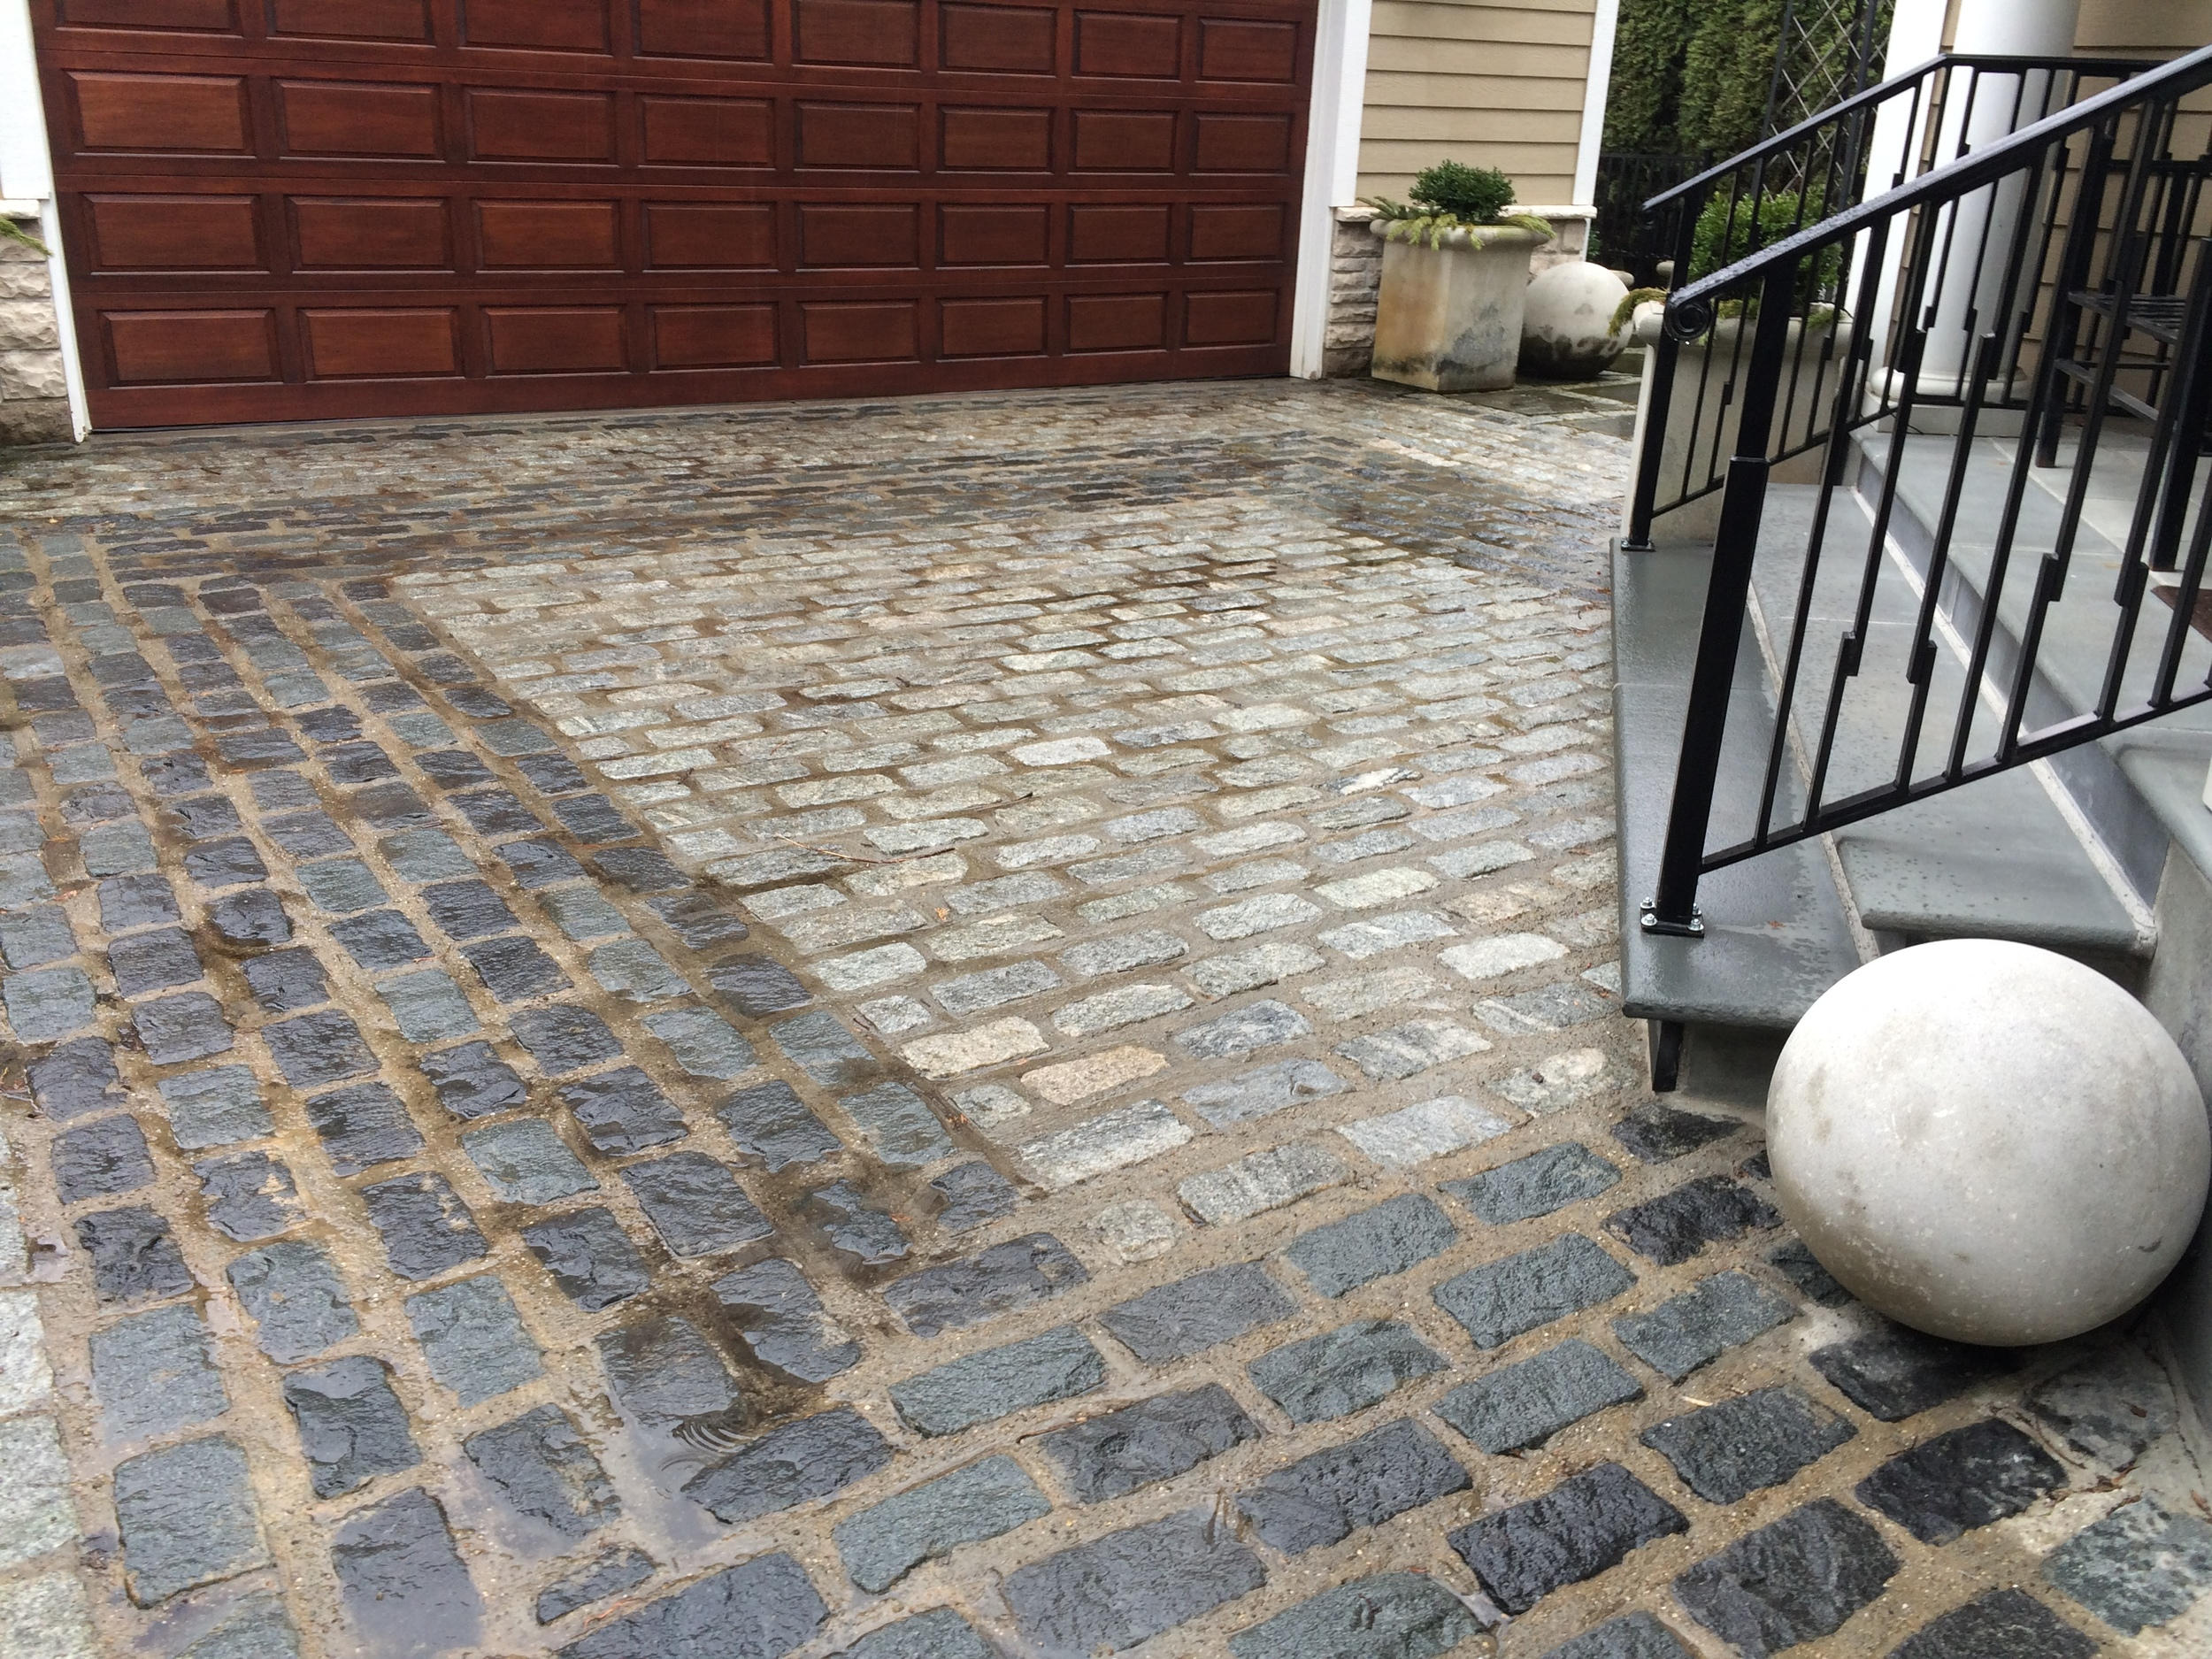 Brick driveway with two shades of brick and rectangle detail